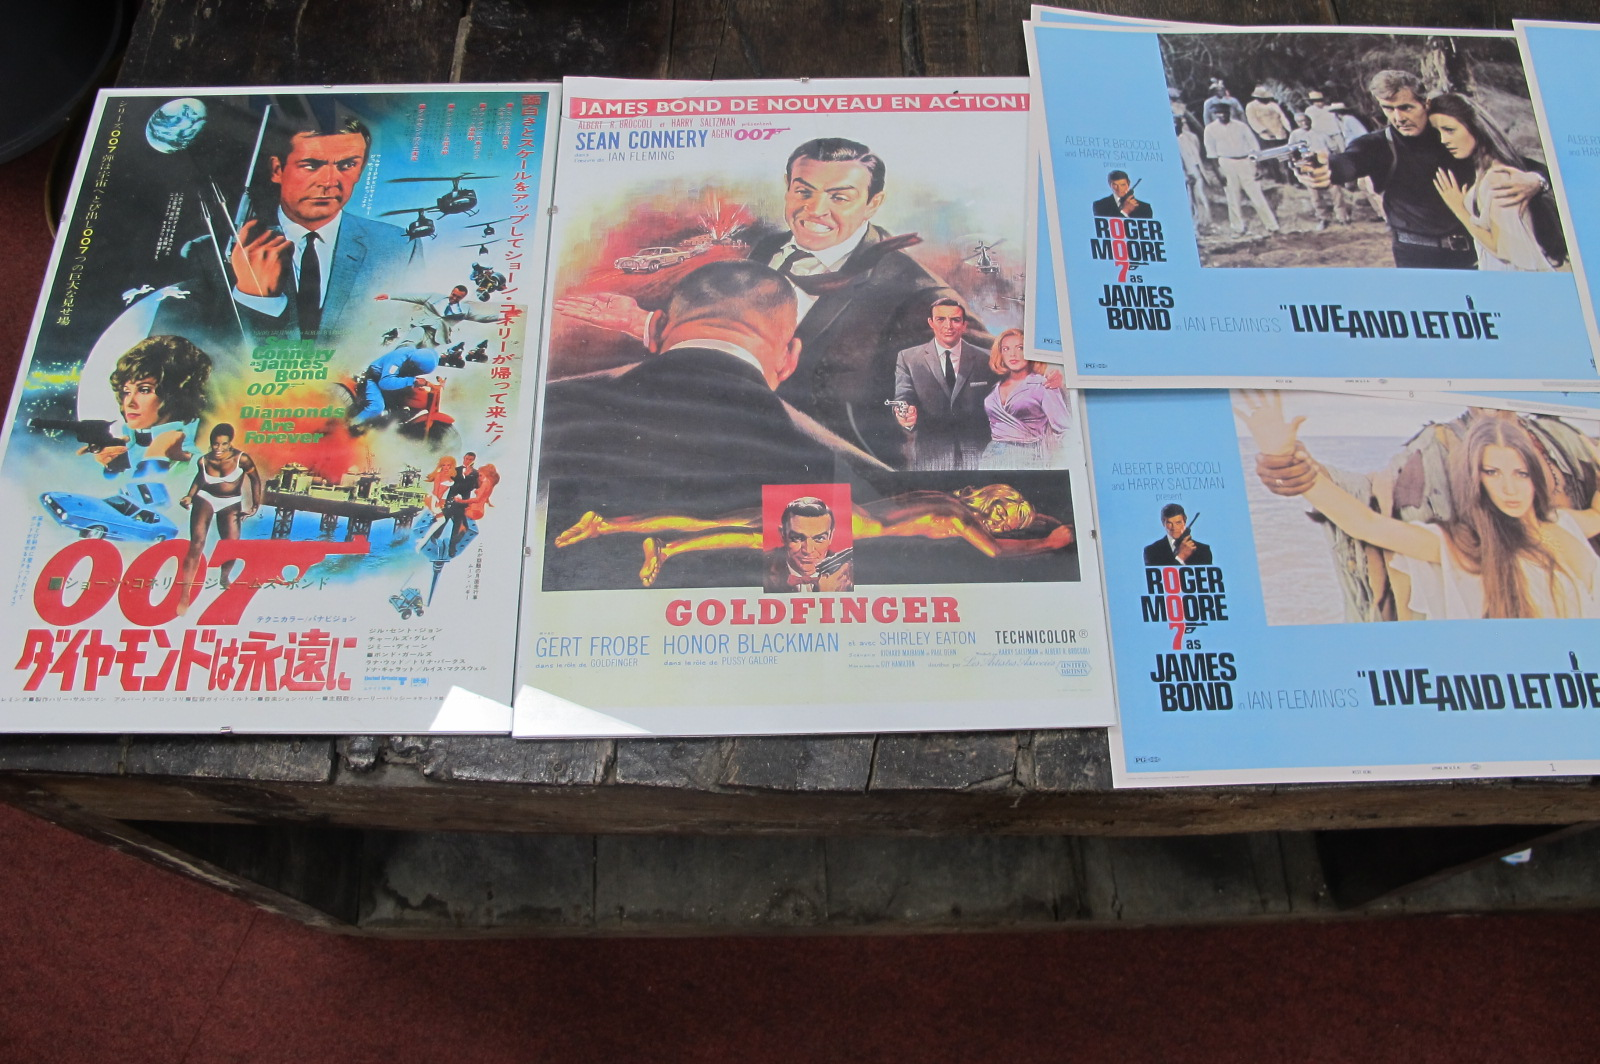 James Bond - two later posters featuring Sean Connery, 42 x 29.5cm, eight lobby cards featuring